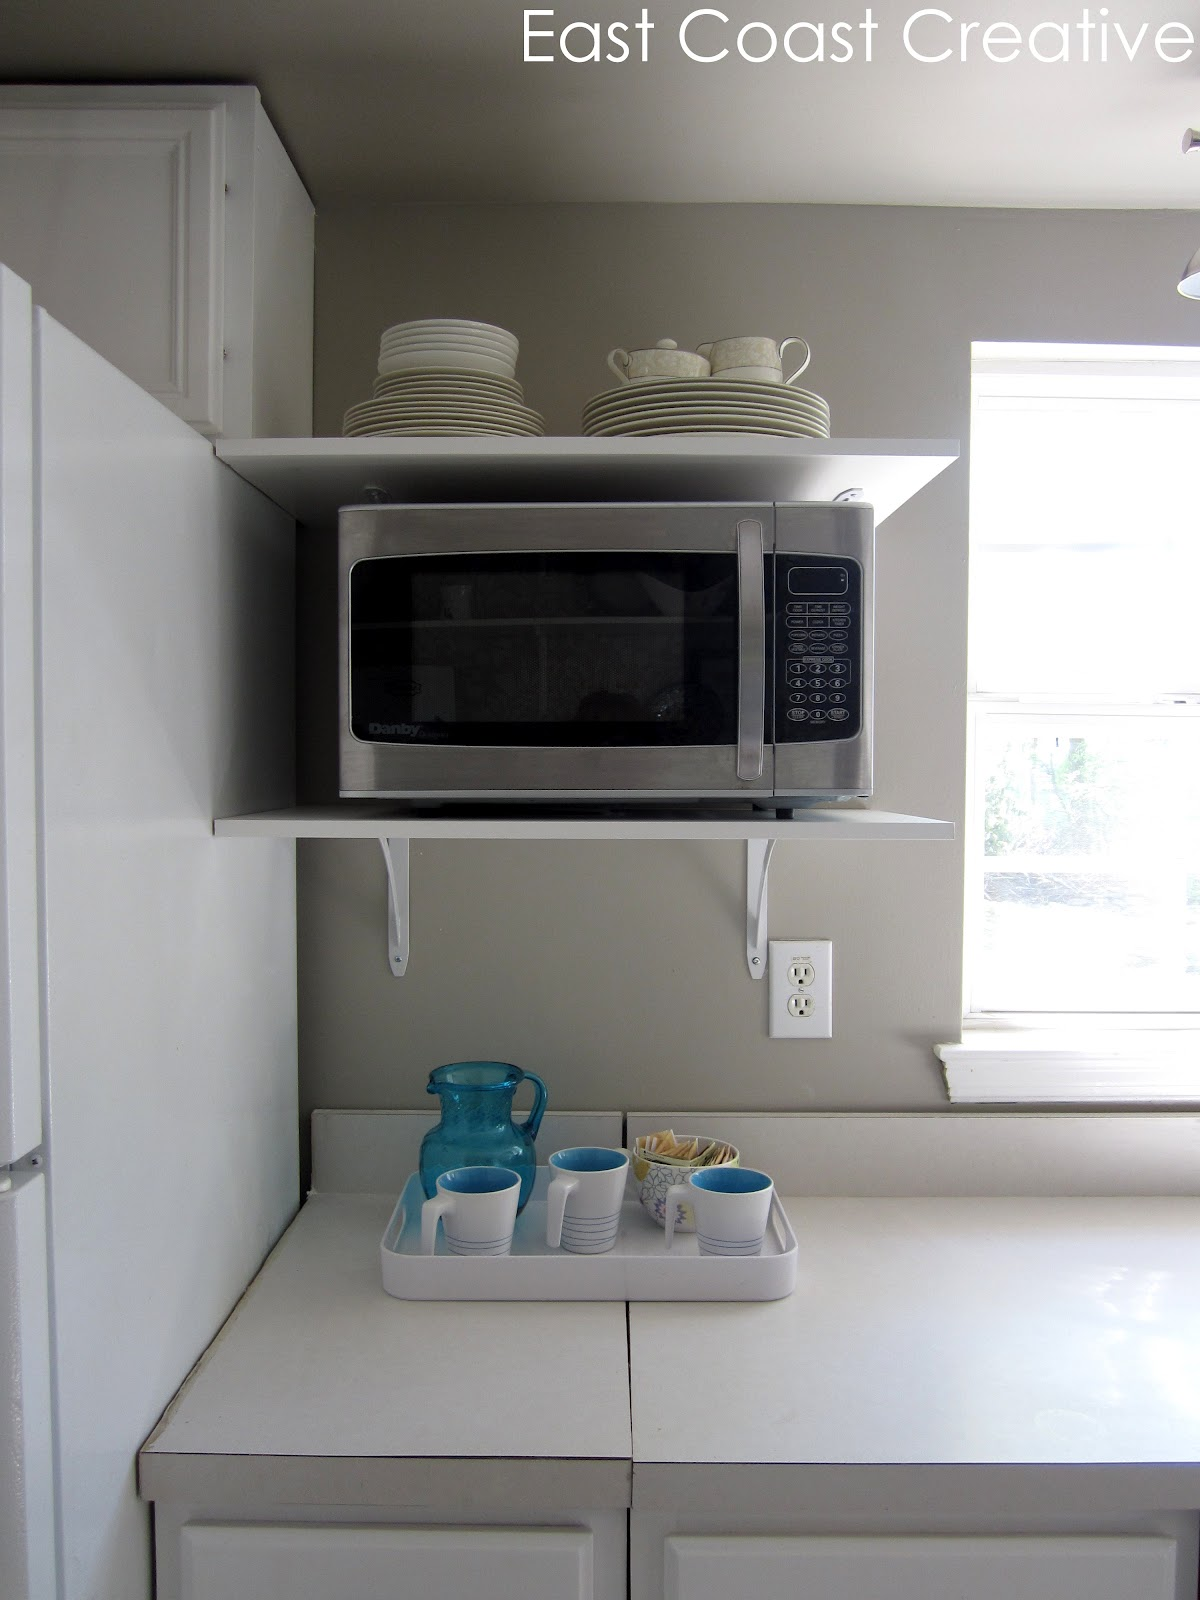 Kitchen Countertop Shelf Timer App Donefor Now Renovation Update